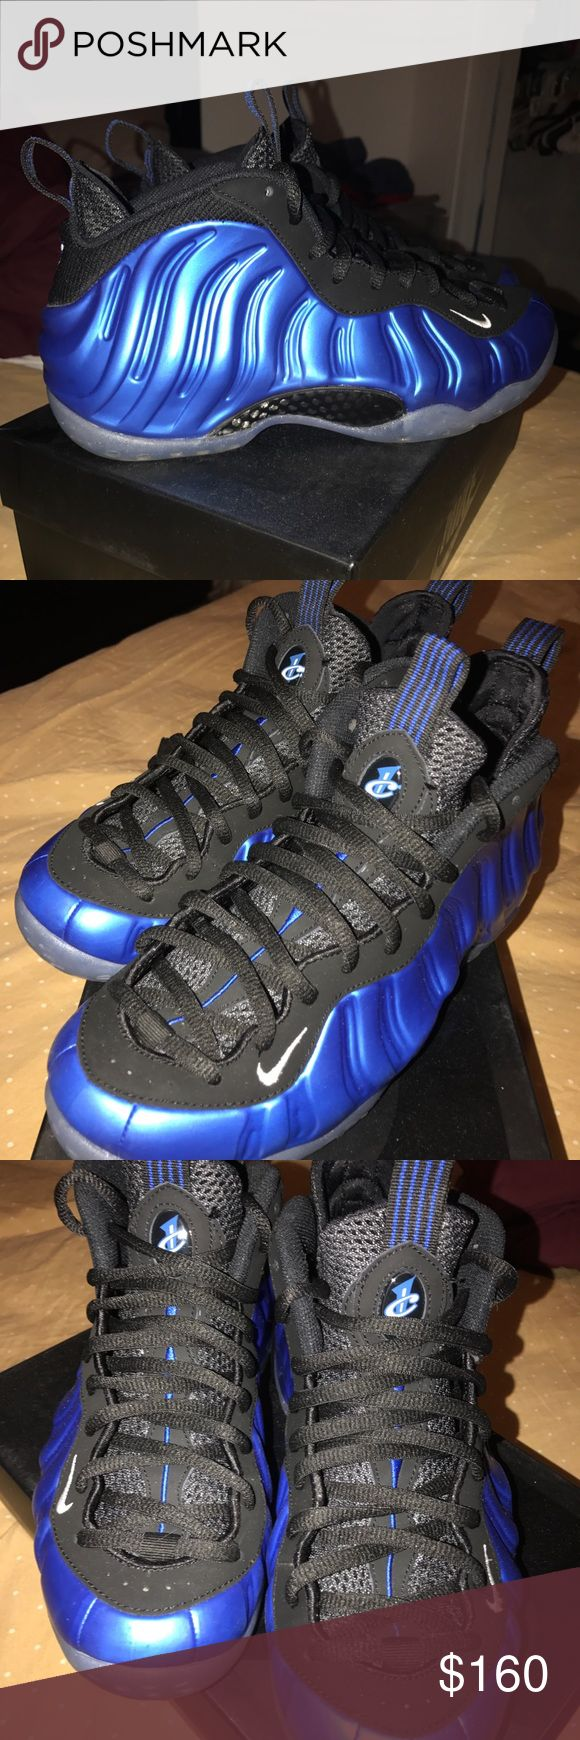 Nike Foamposite Shoes are mint Condition, Penny Hardaway inspired Foams , size 8 , royal blue .. serious inquires only Nike Shoes Sneakers